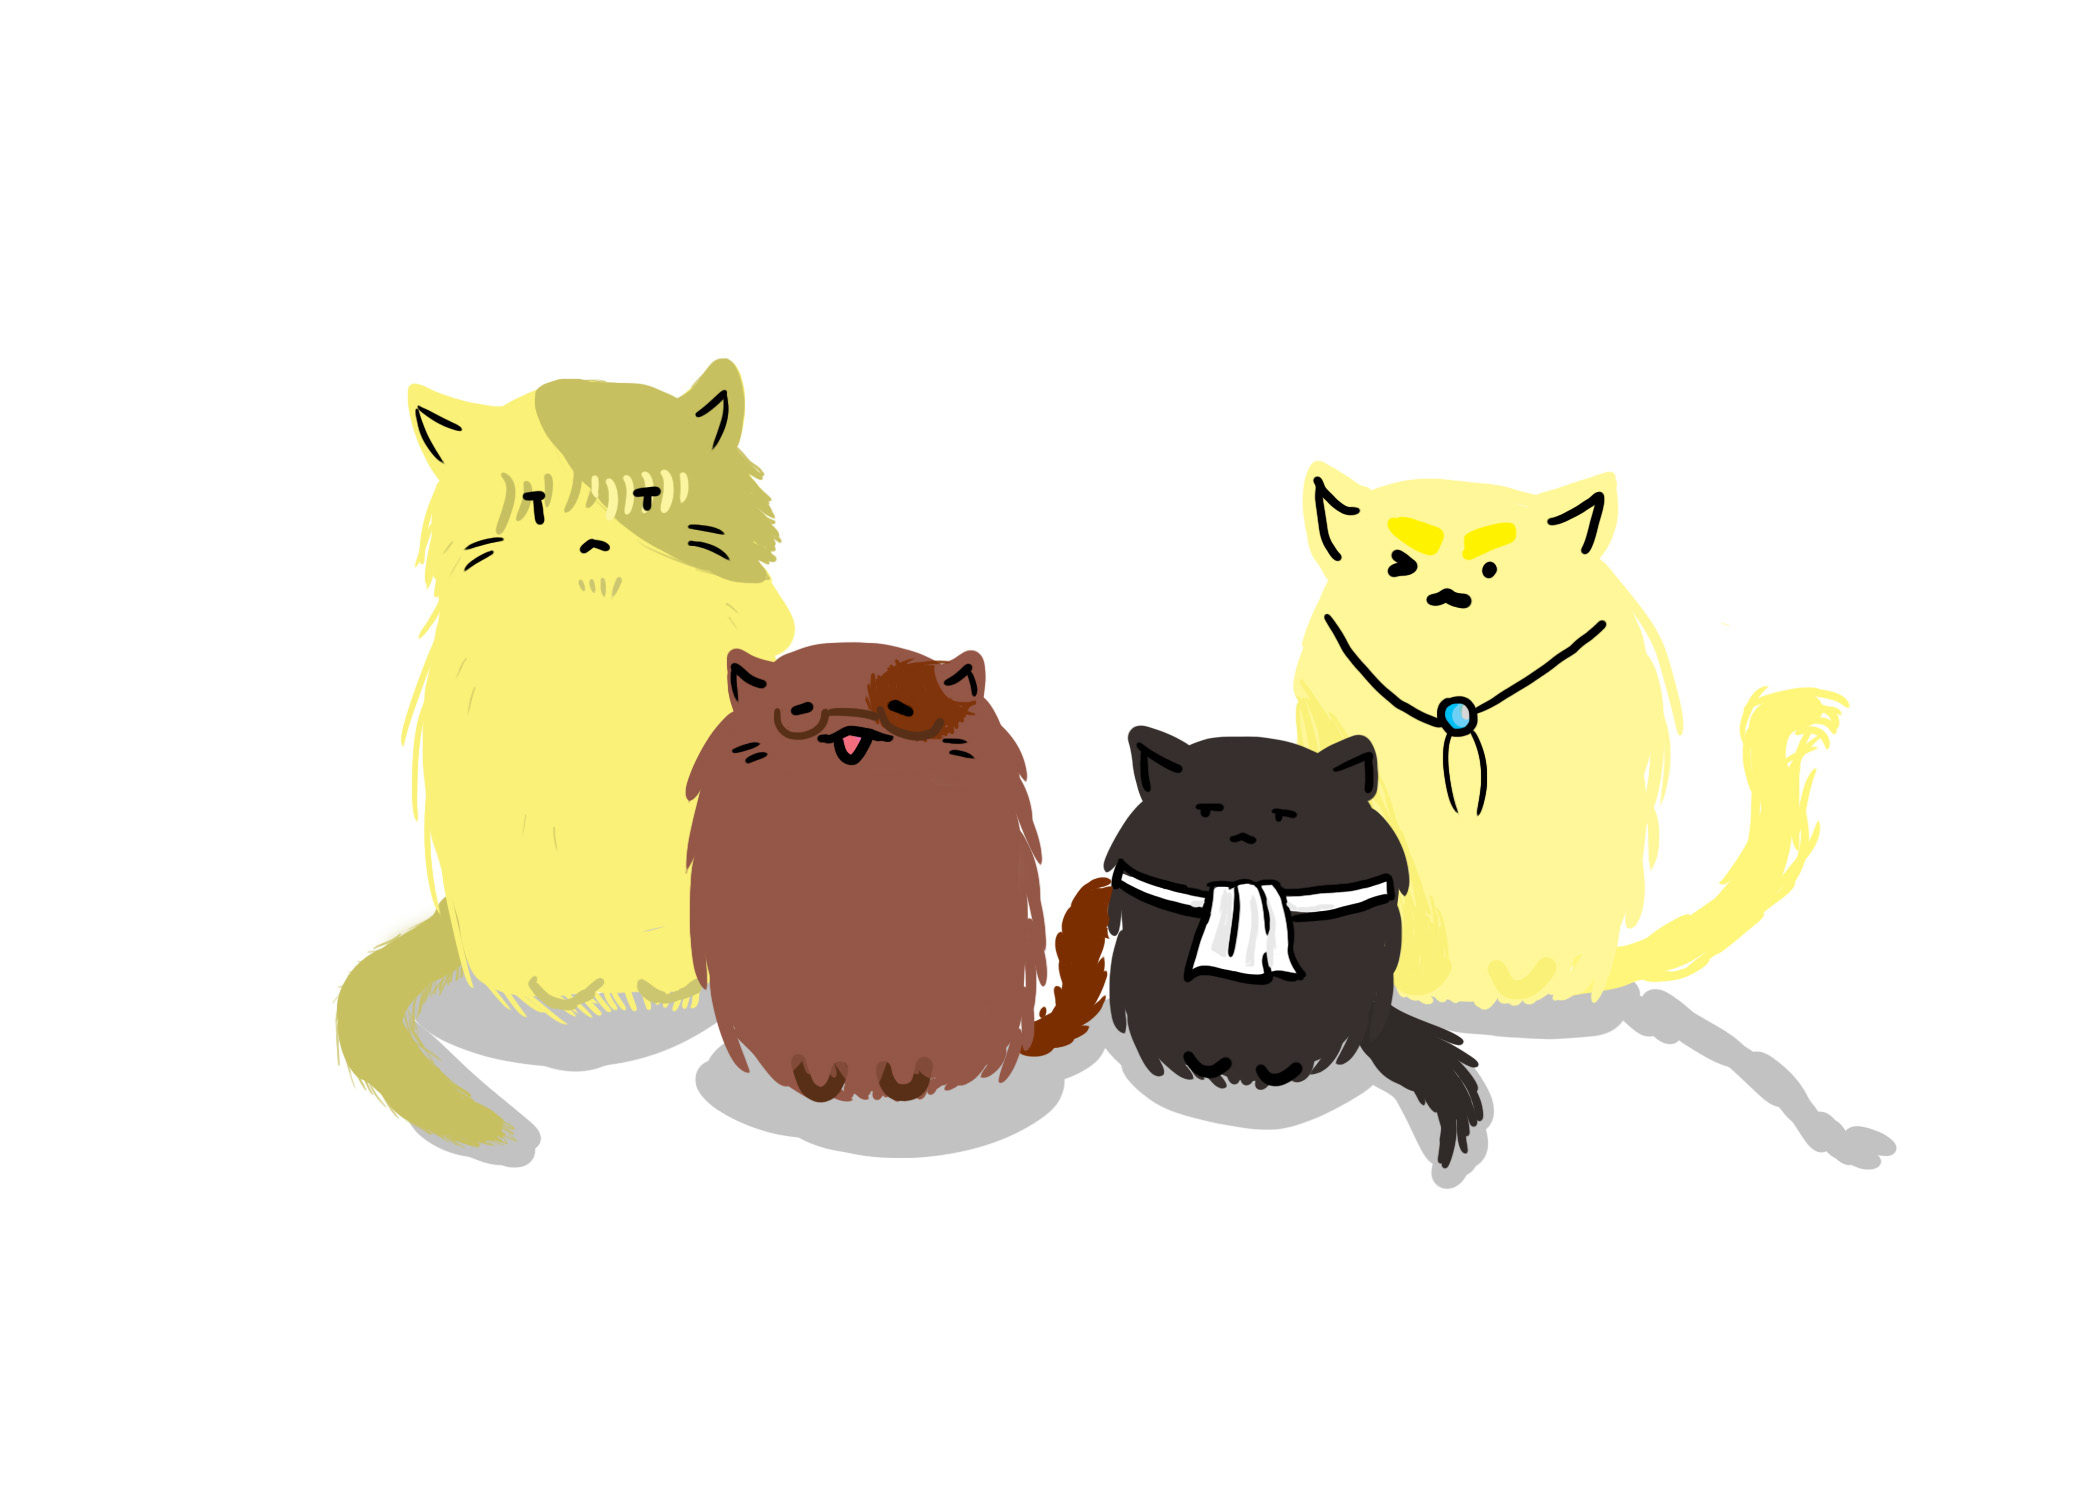 I was bored so I drew the Vets at cats